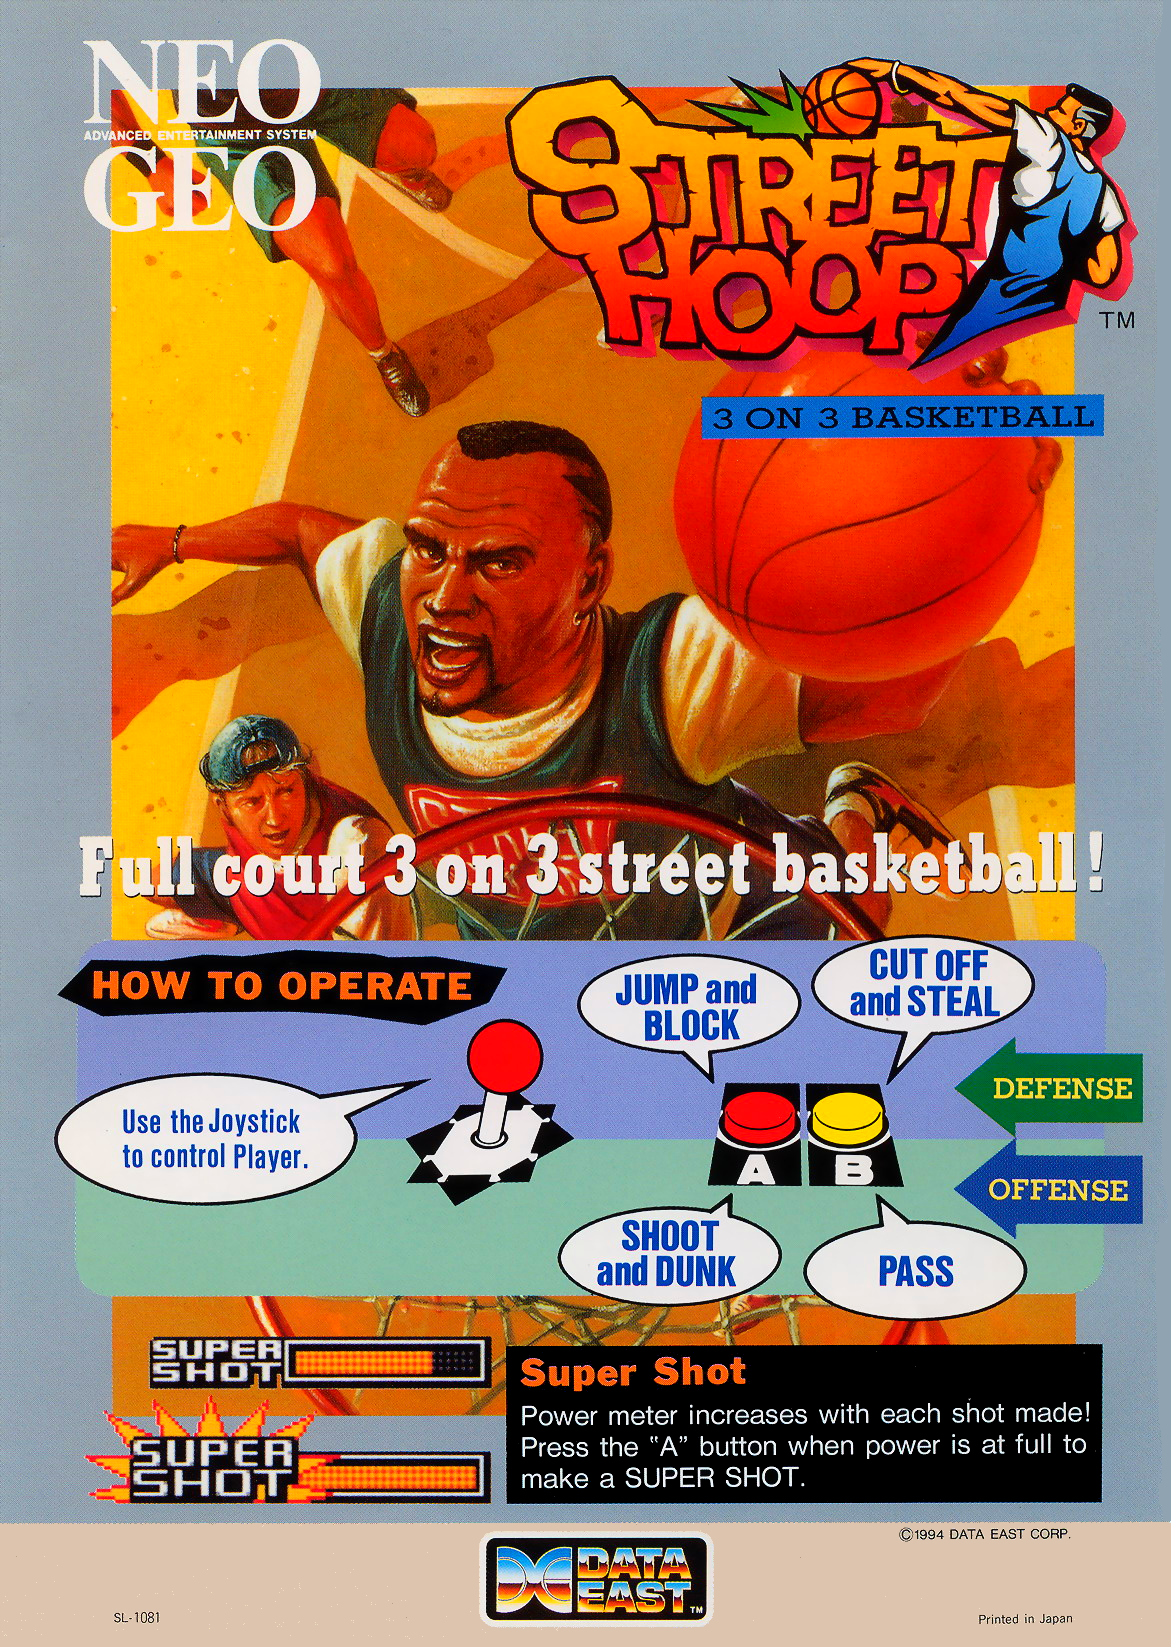 Street Hoop / Street Slam / Dunk Dream flyer